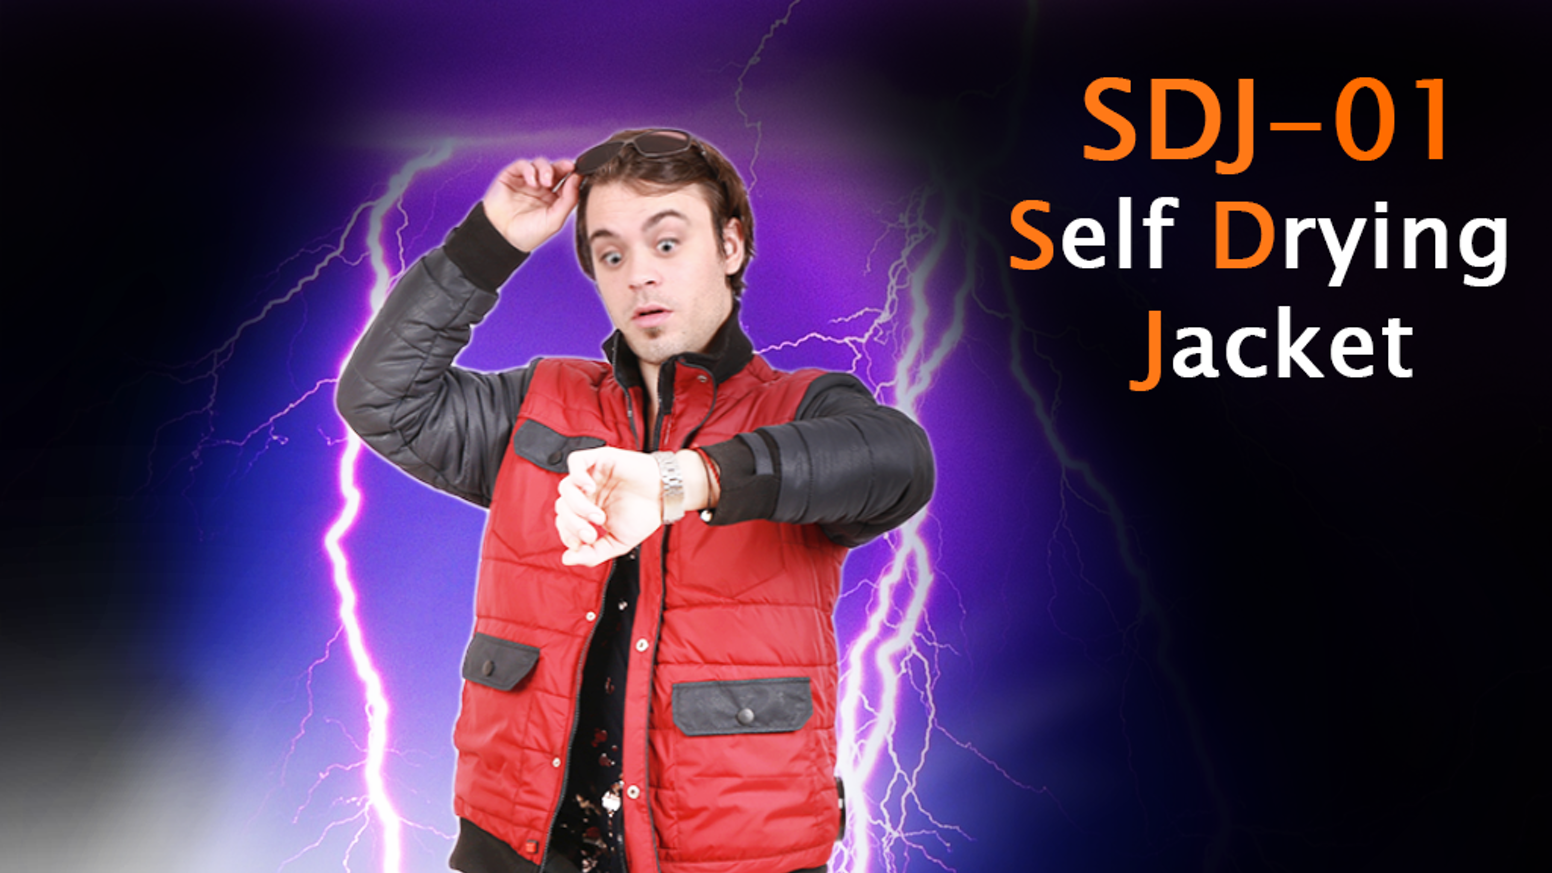 """""""Back to the Future"""" inspired self-drying jackets are reality in 2015. Updated design includes interior smartphone and tablet pockets."""